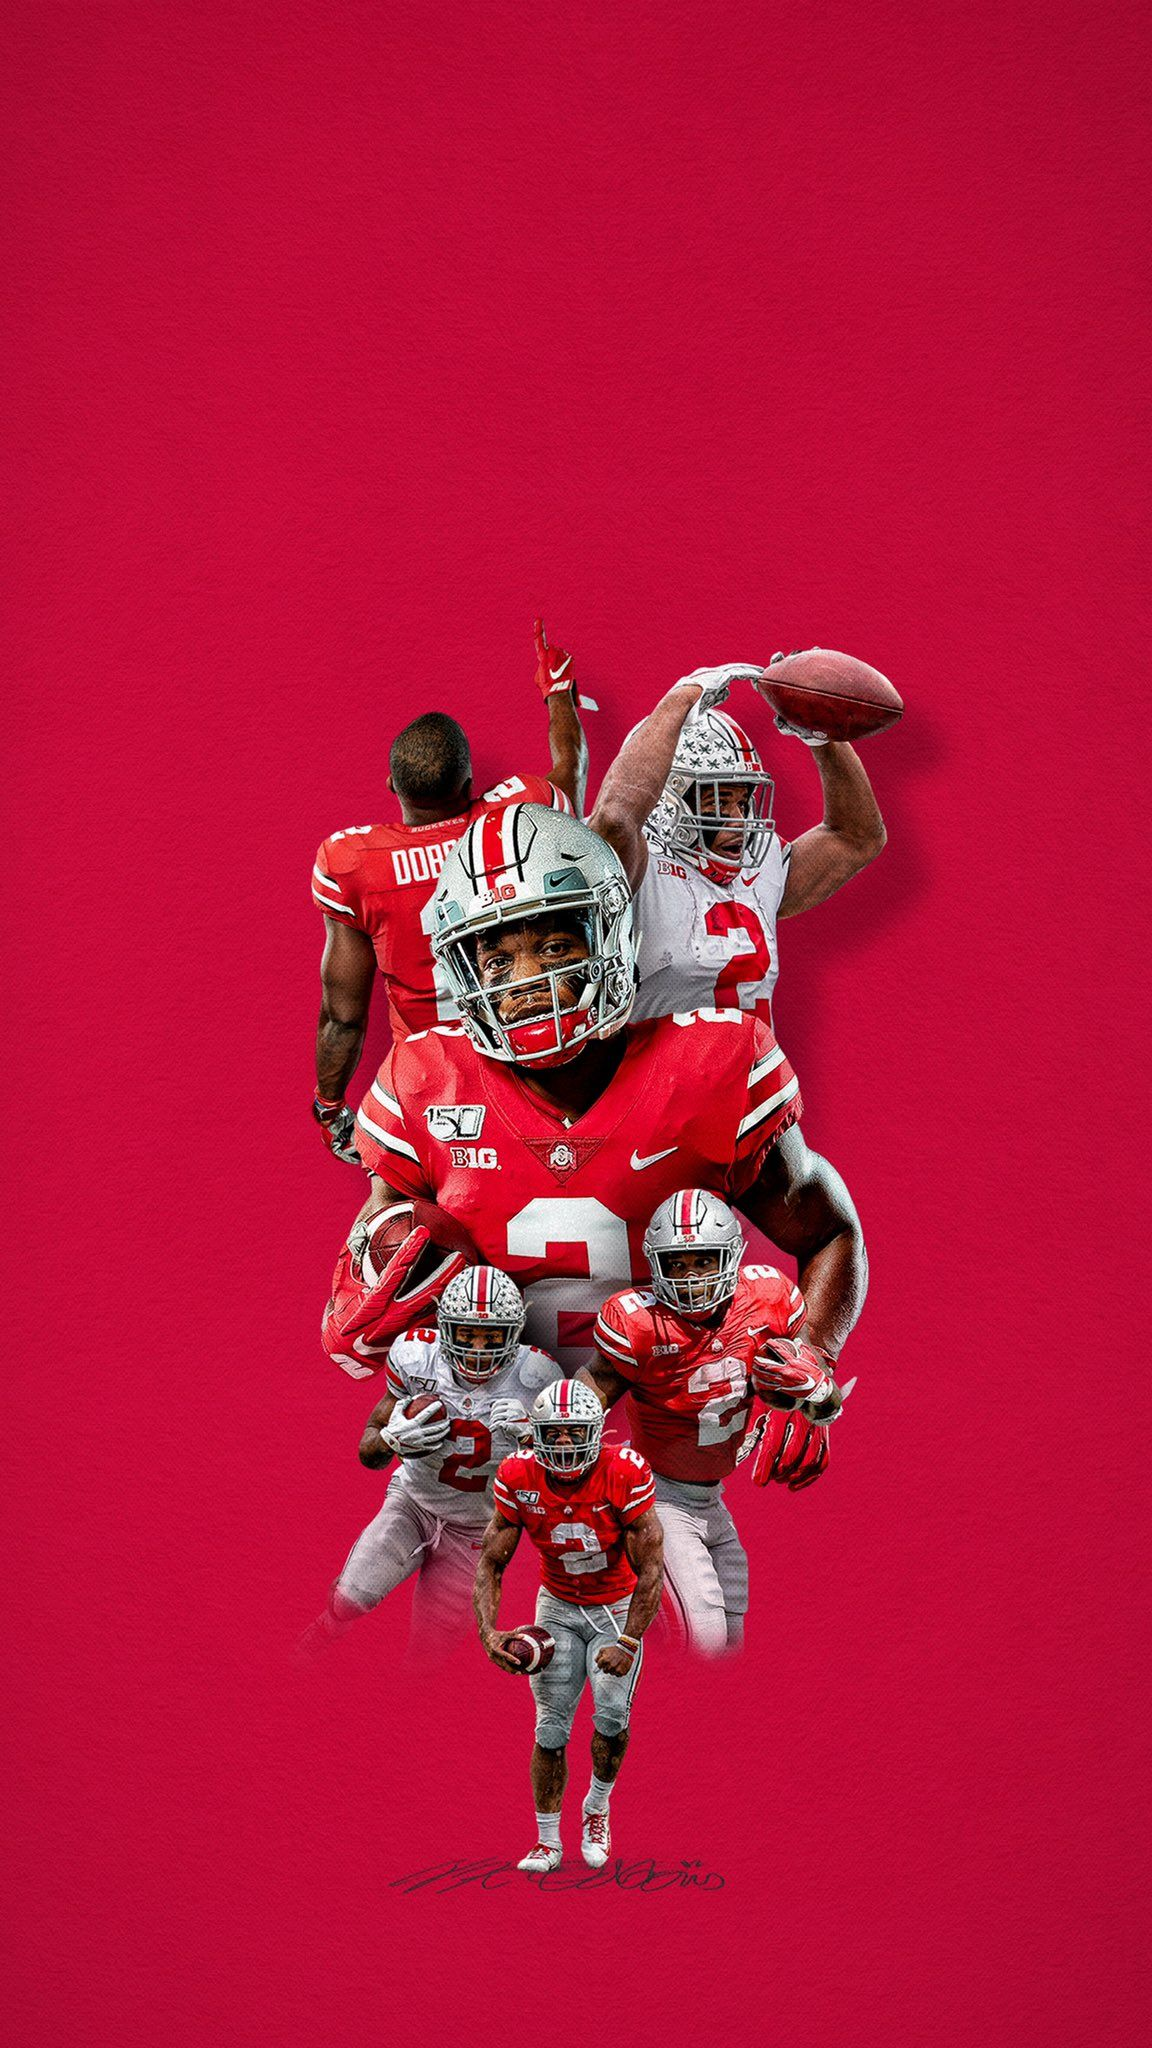 Pin by Ohio State Buckeyes on Winning Wallpaper in 2020 ...